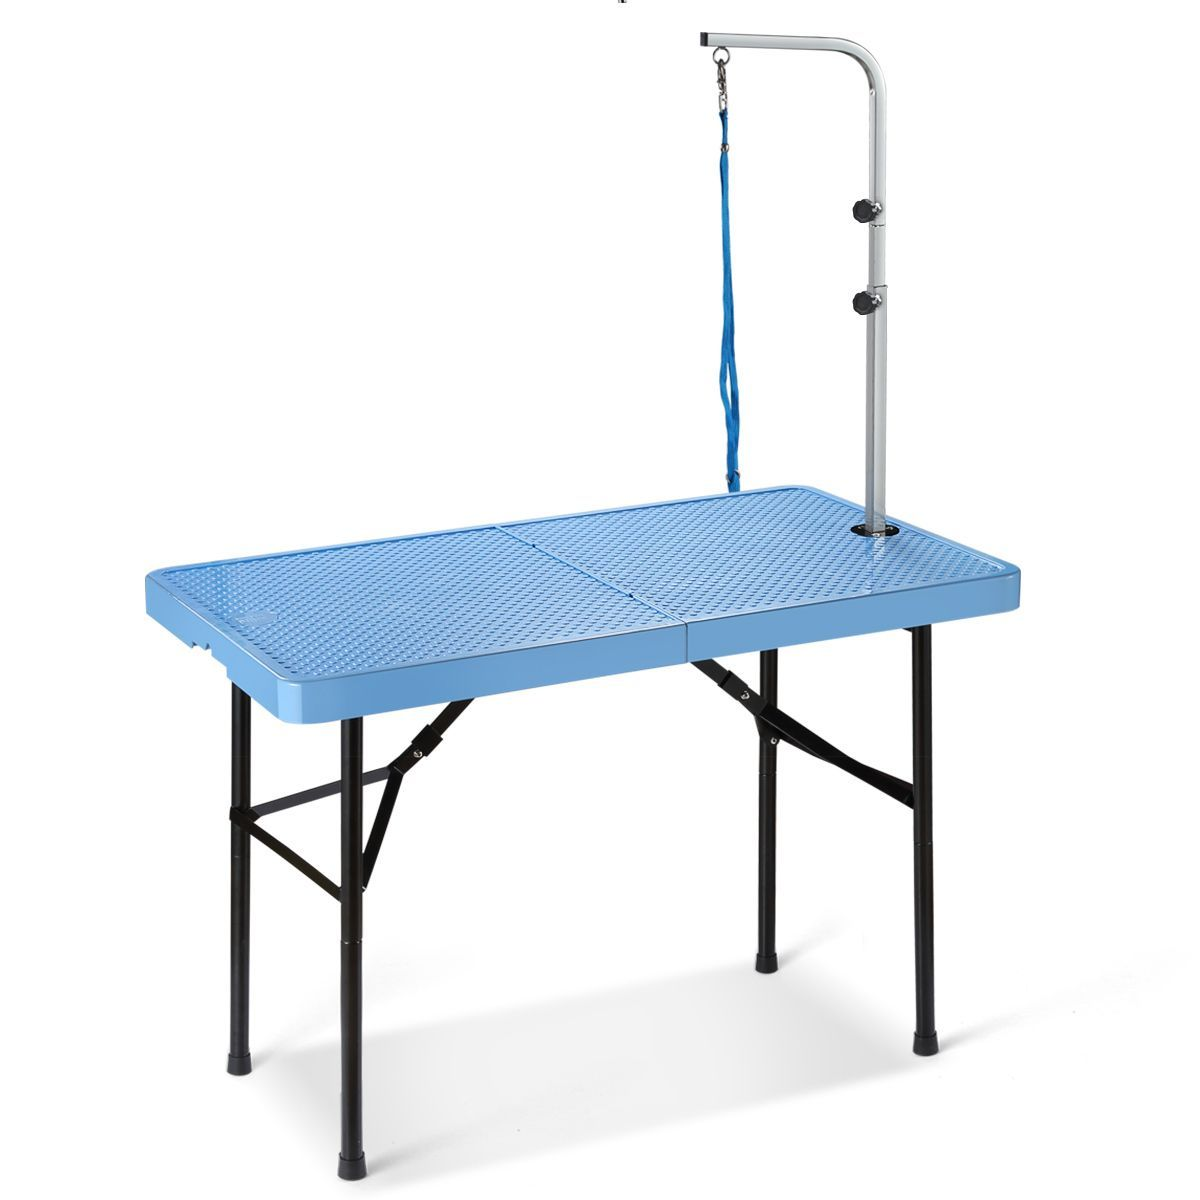 Pet Dog Grooming Table with Portable Handle and Adjustable Button Blue 75cm